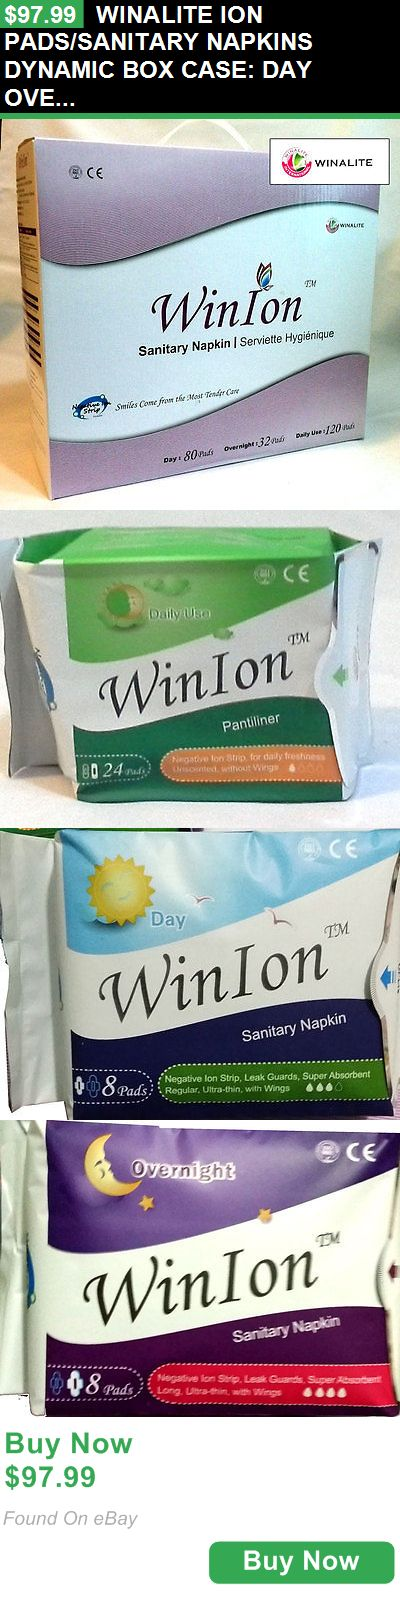 Sanitary Napkins 180947: Winalite Ion Pads/Sanitary Napkins Dynamic Box Case: Day Overnight Daily Use BUY IT NOW ONLY: $97.99